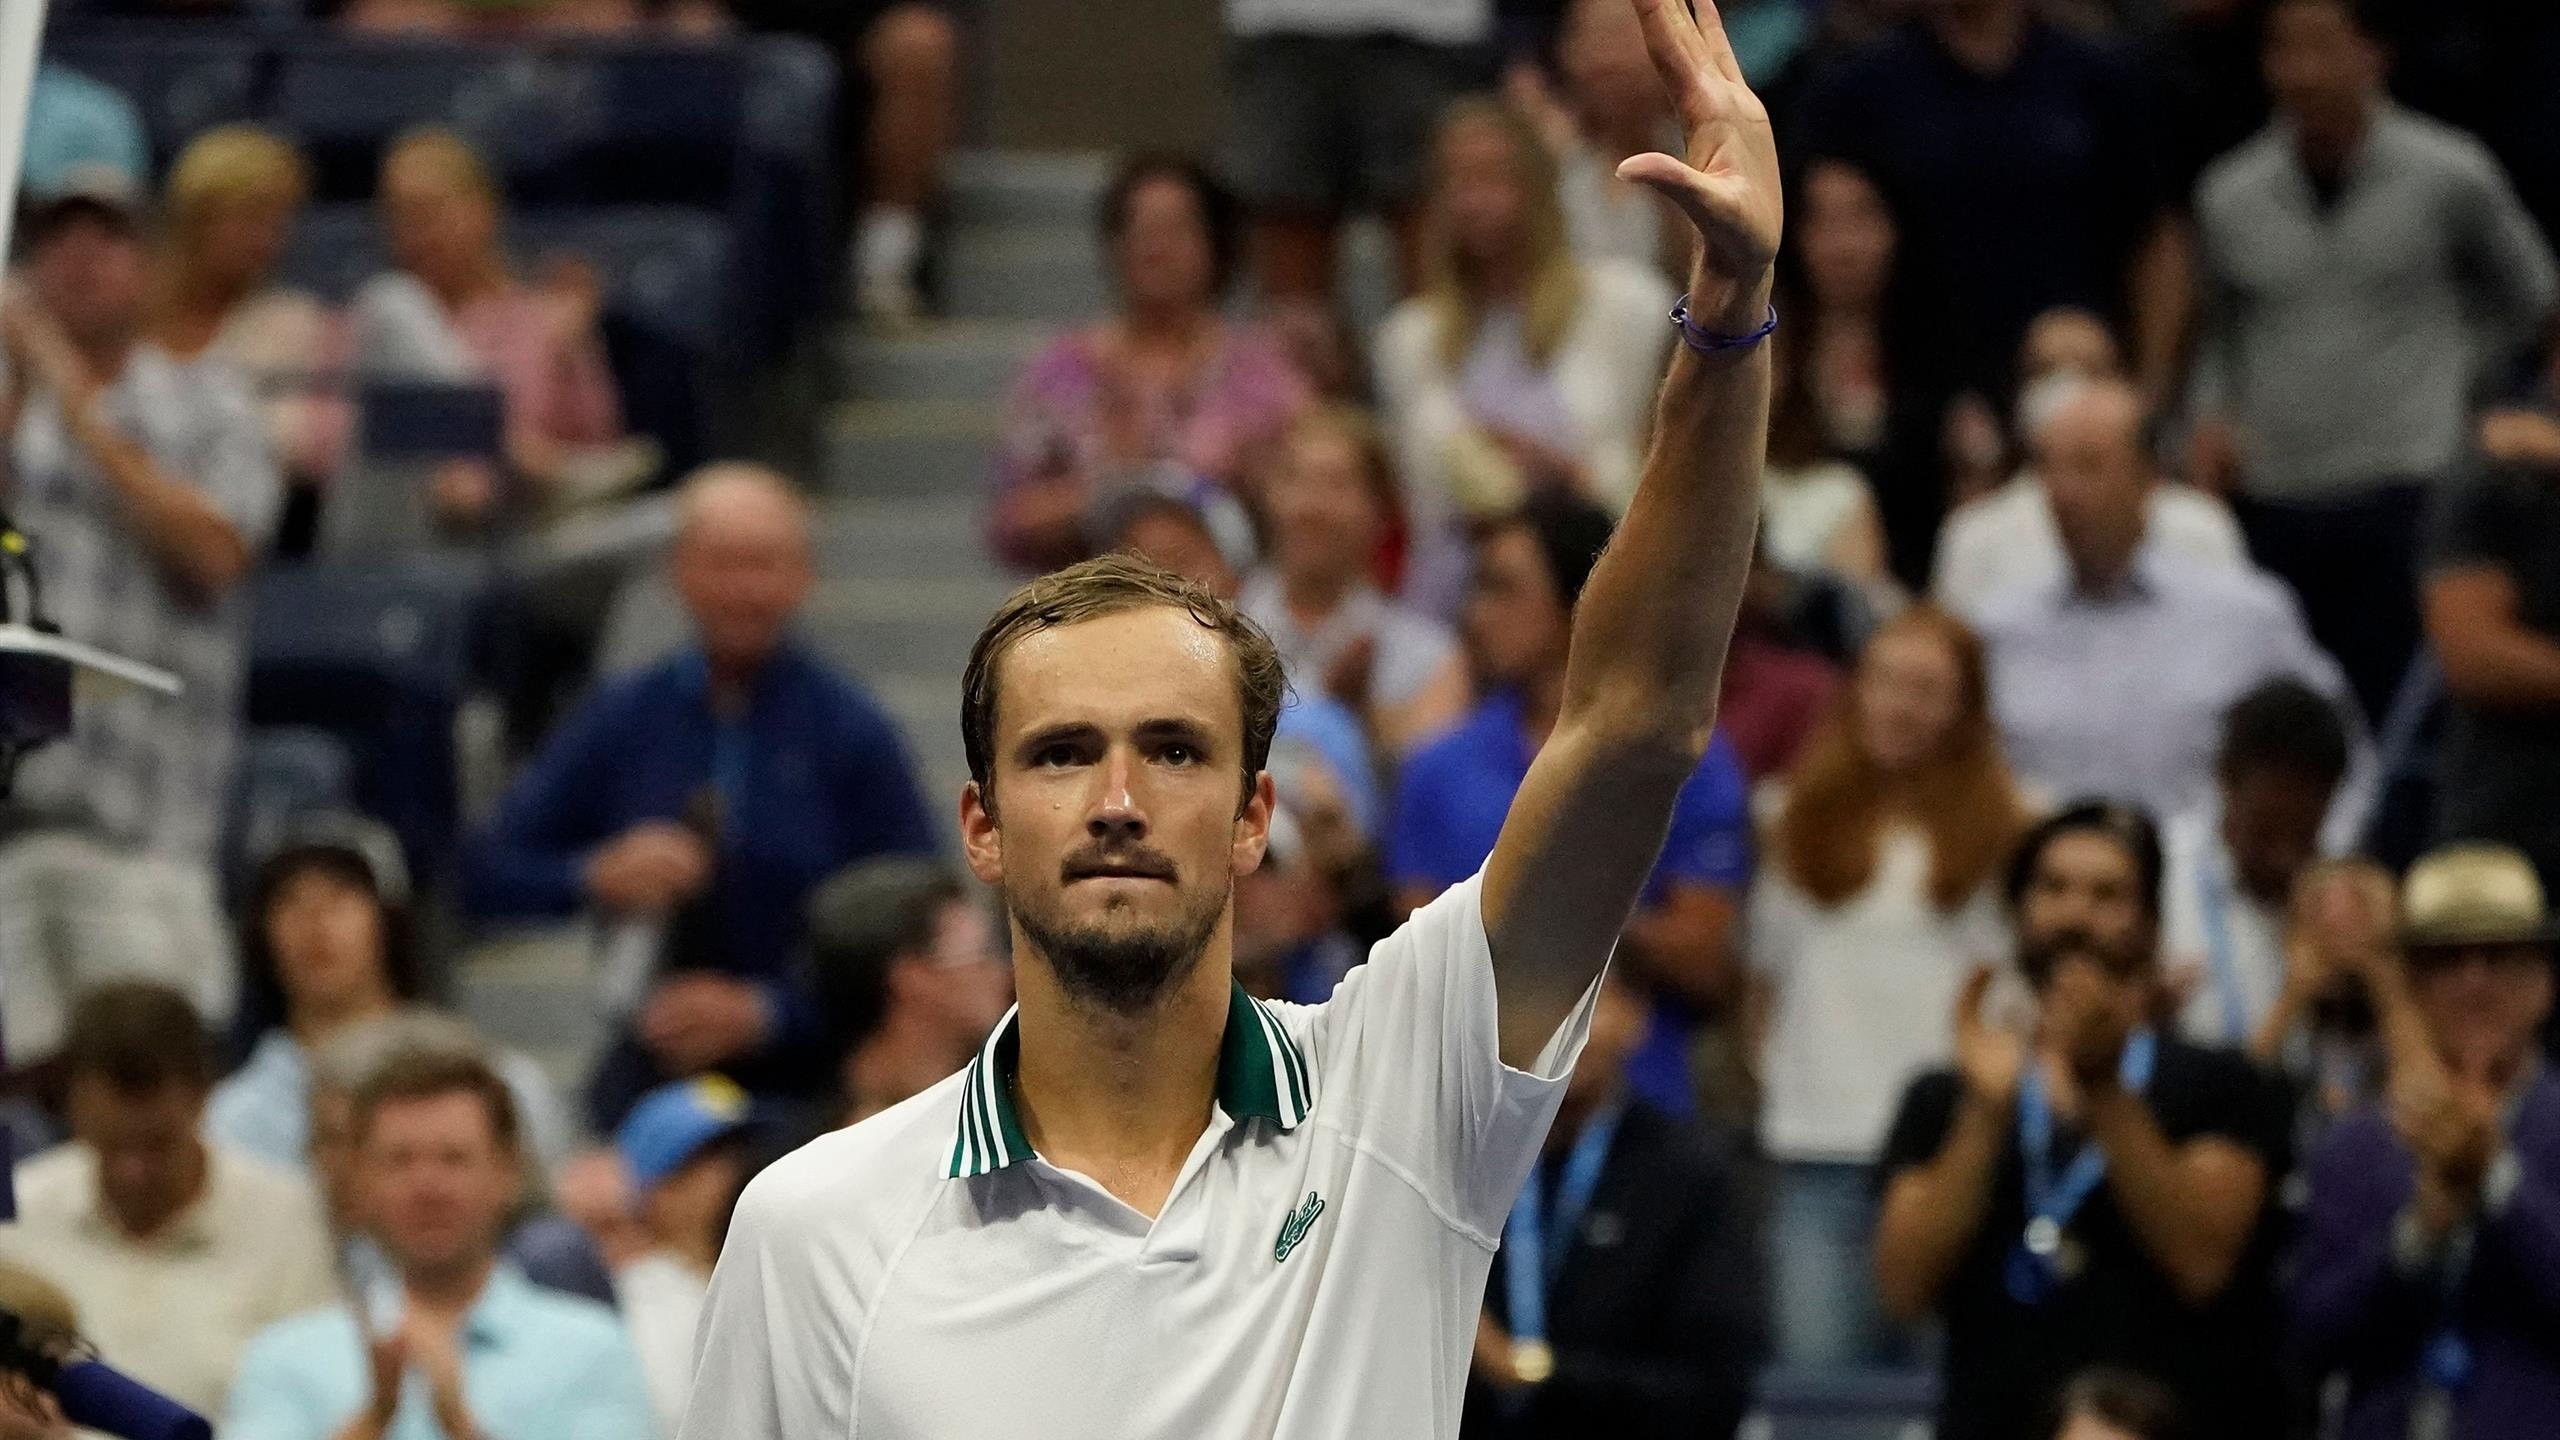 His little sister is named elena. Us Open 2021 Tennis Daniil Medvedev Cruises Into Round Three With Straight Sets Win Over Dominik Koepfer Eurosport